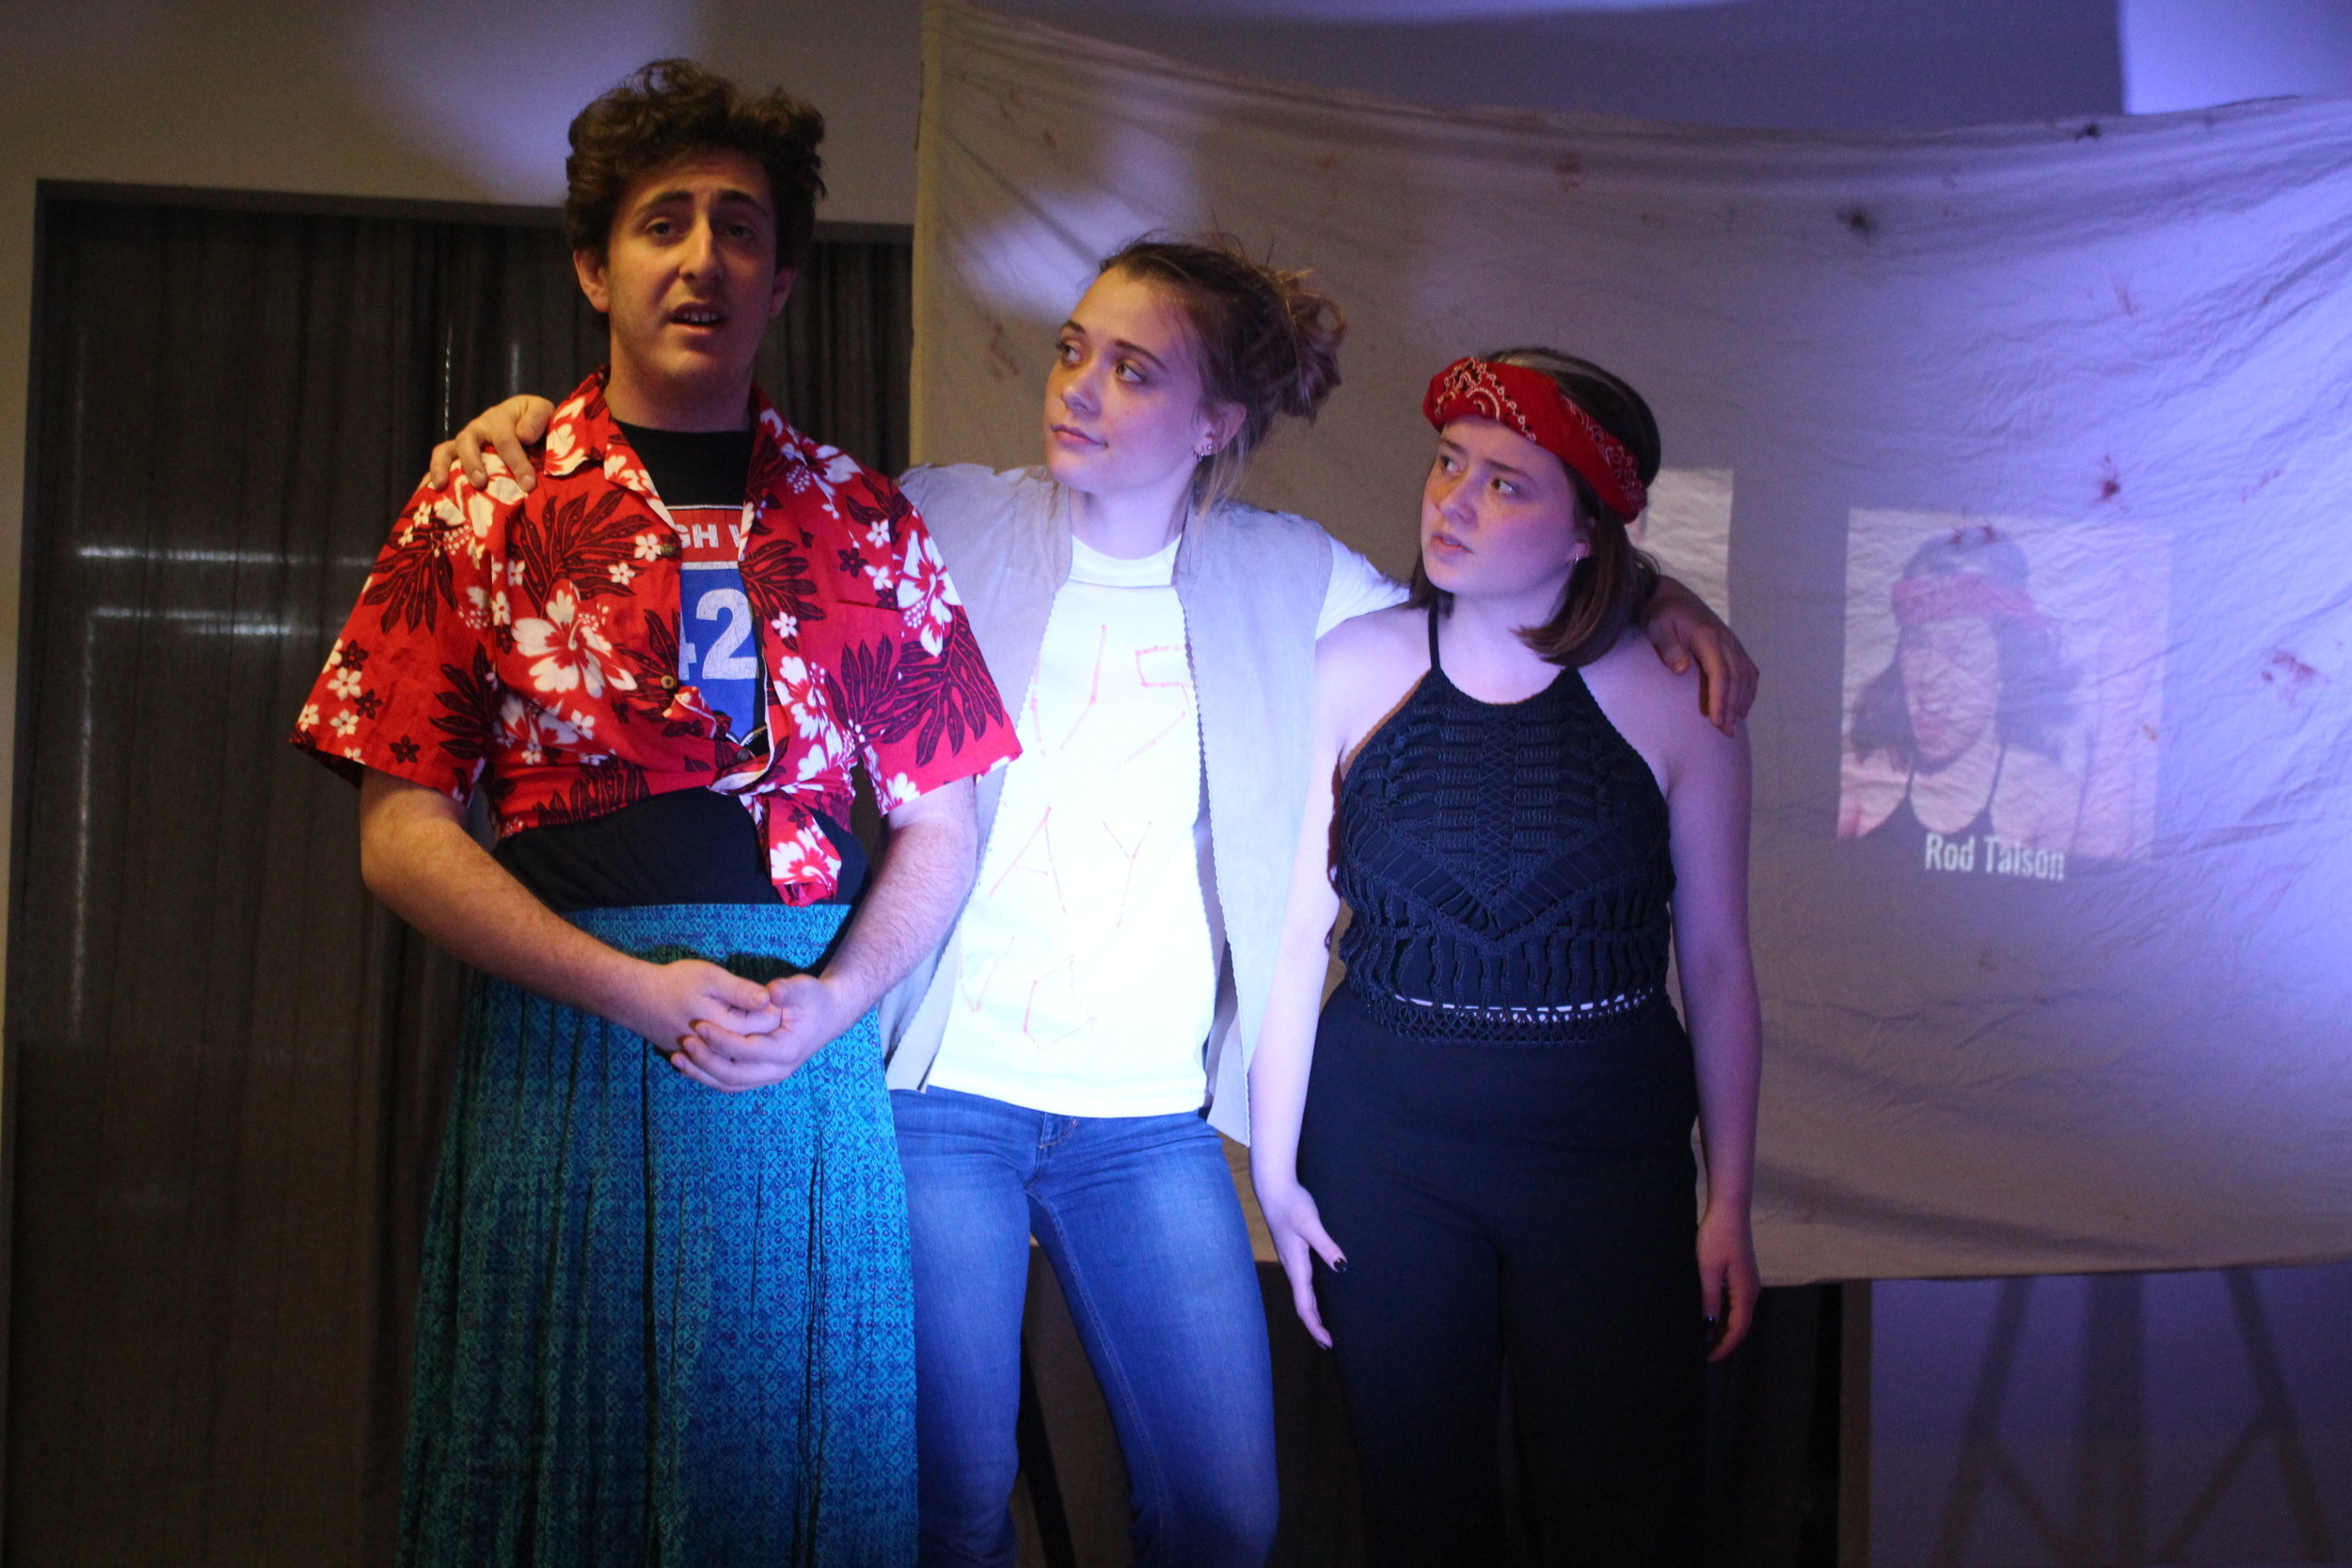 "(L to R) Sam Korobkin, Ona Martini, and Sarah Olberg in ""The Untold Yippie Project"" by Becca Schlossberg."